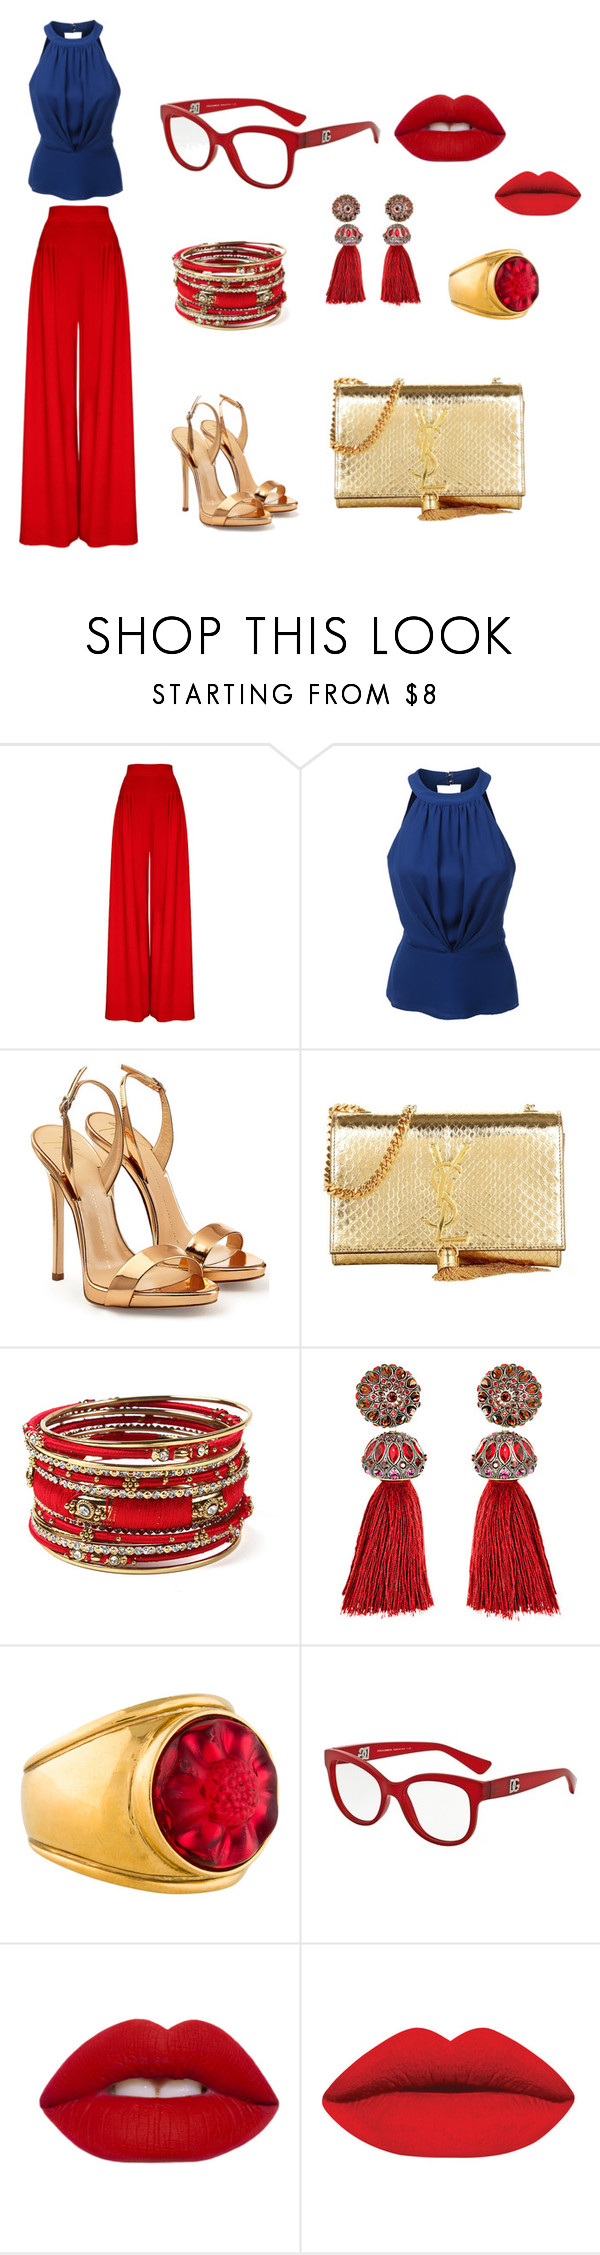 evening chic  look by lisa-elijah on Polyvore featuring LE3NO, Giuseppe Zanotti, Yves Saint Laurent, Amrita Singh, Lanvin, Lalique, Dolce&Gabbana and Lime Crime